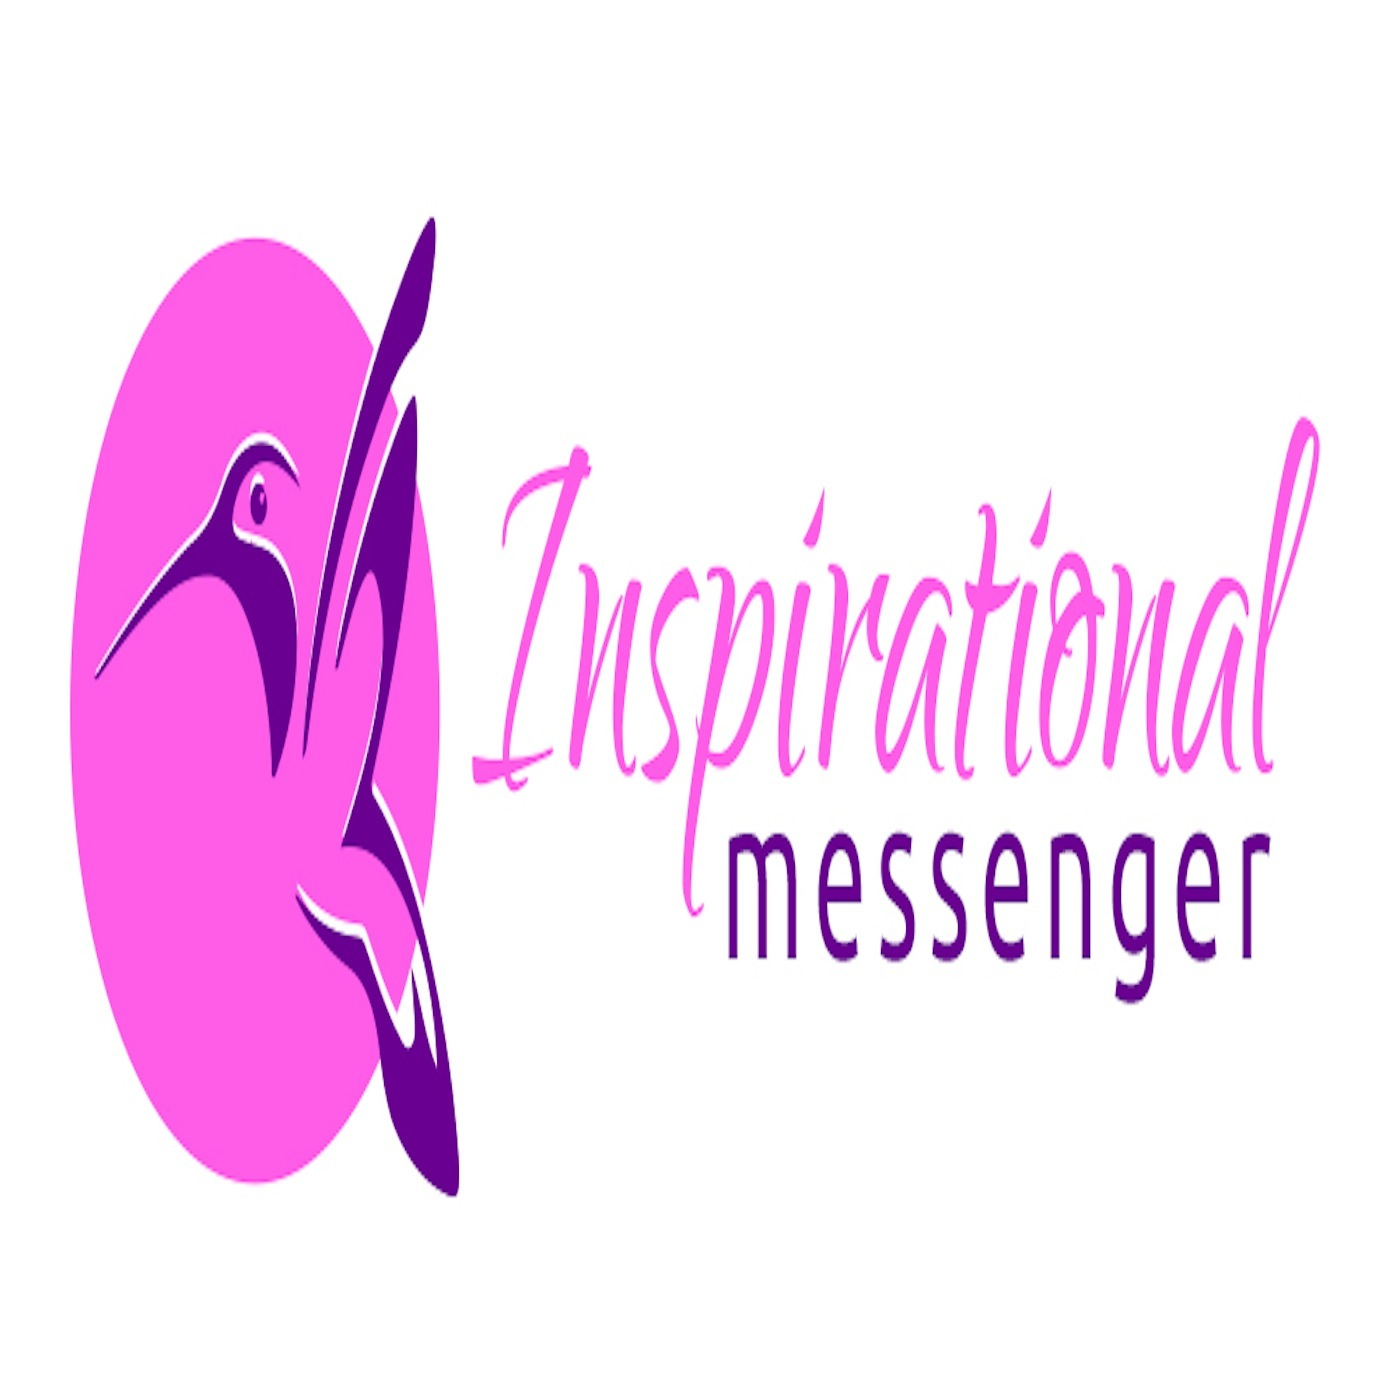 Inspirational Messenger – Inspirational Messenger